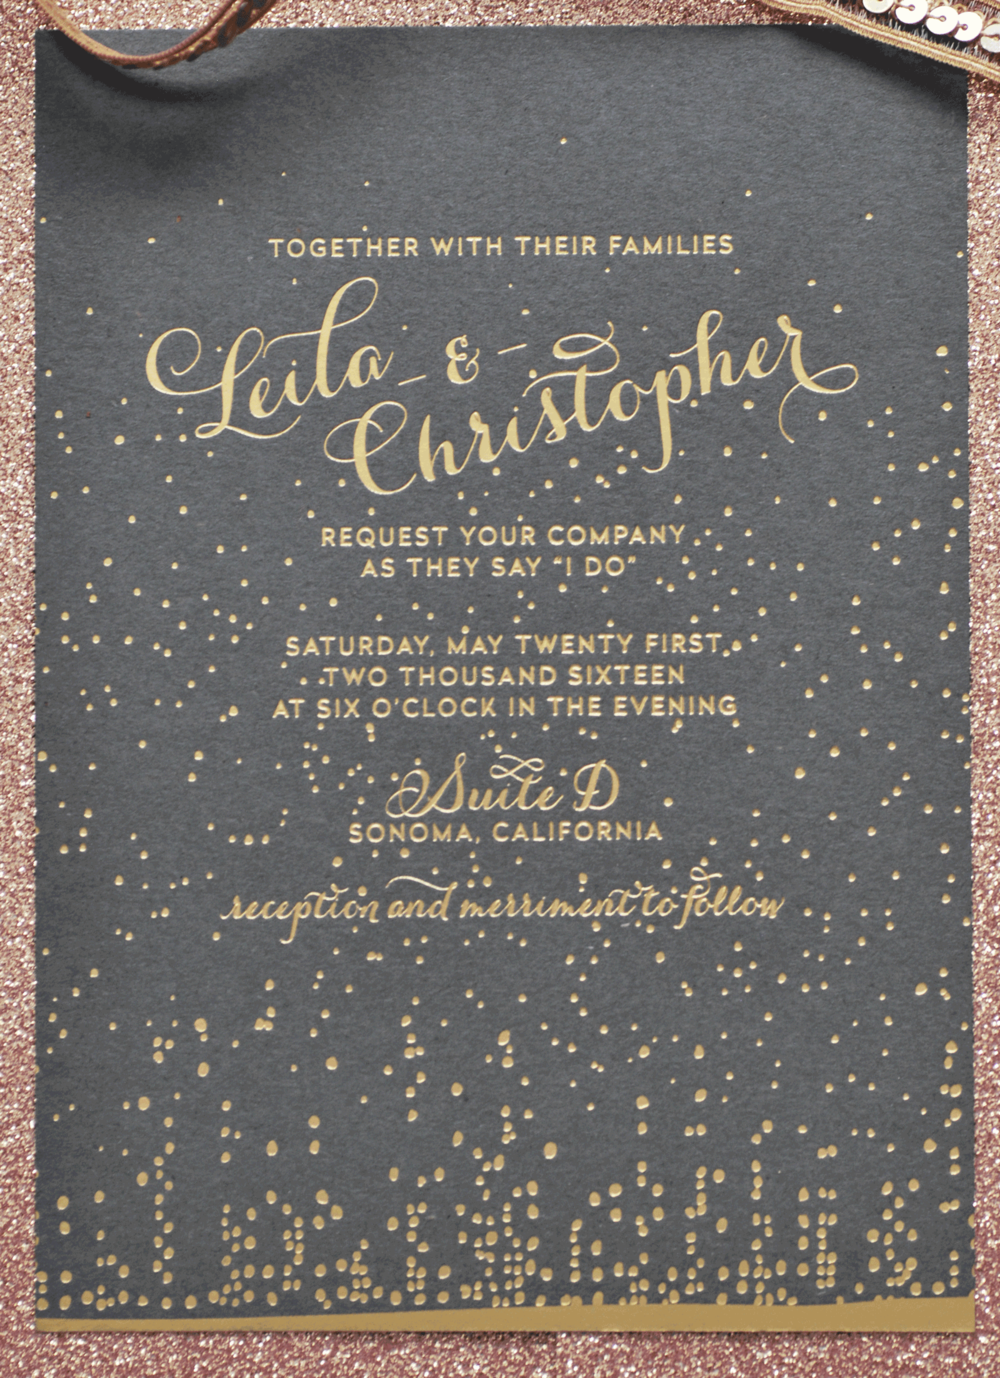 Matte Gold Foil Embossed Wedding Invitation